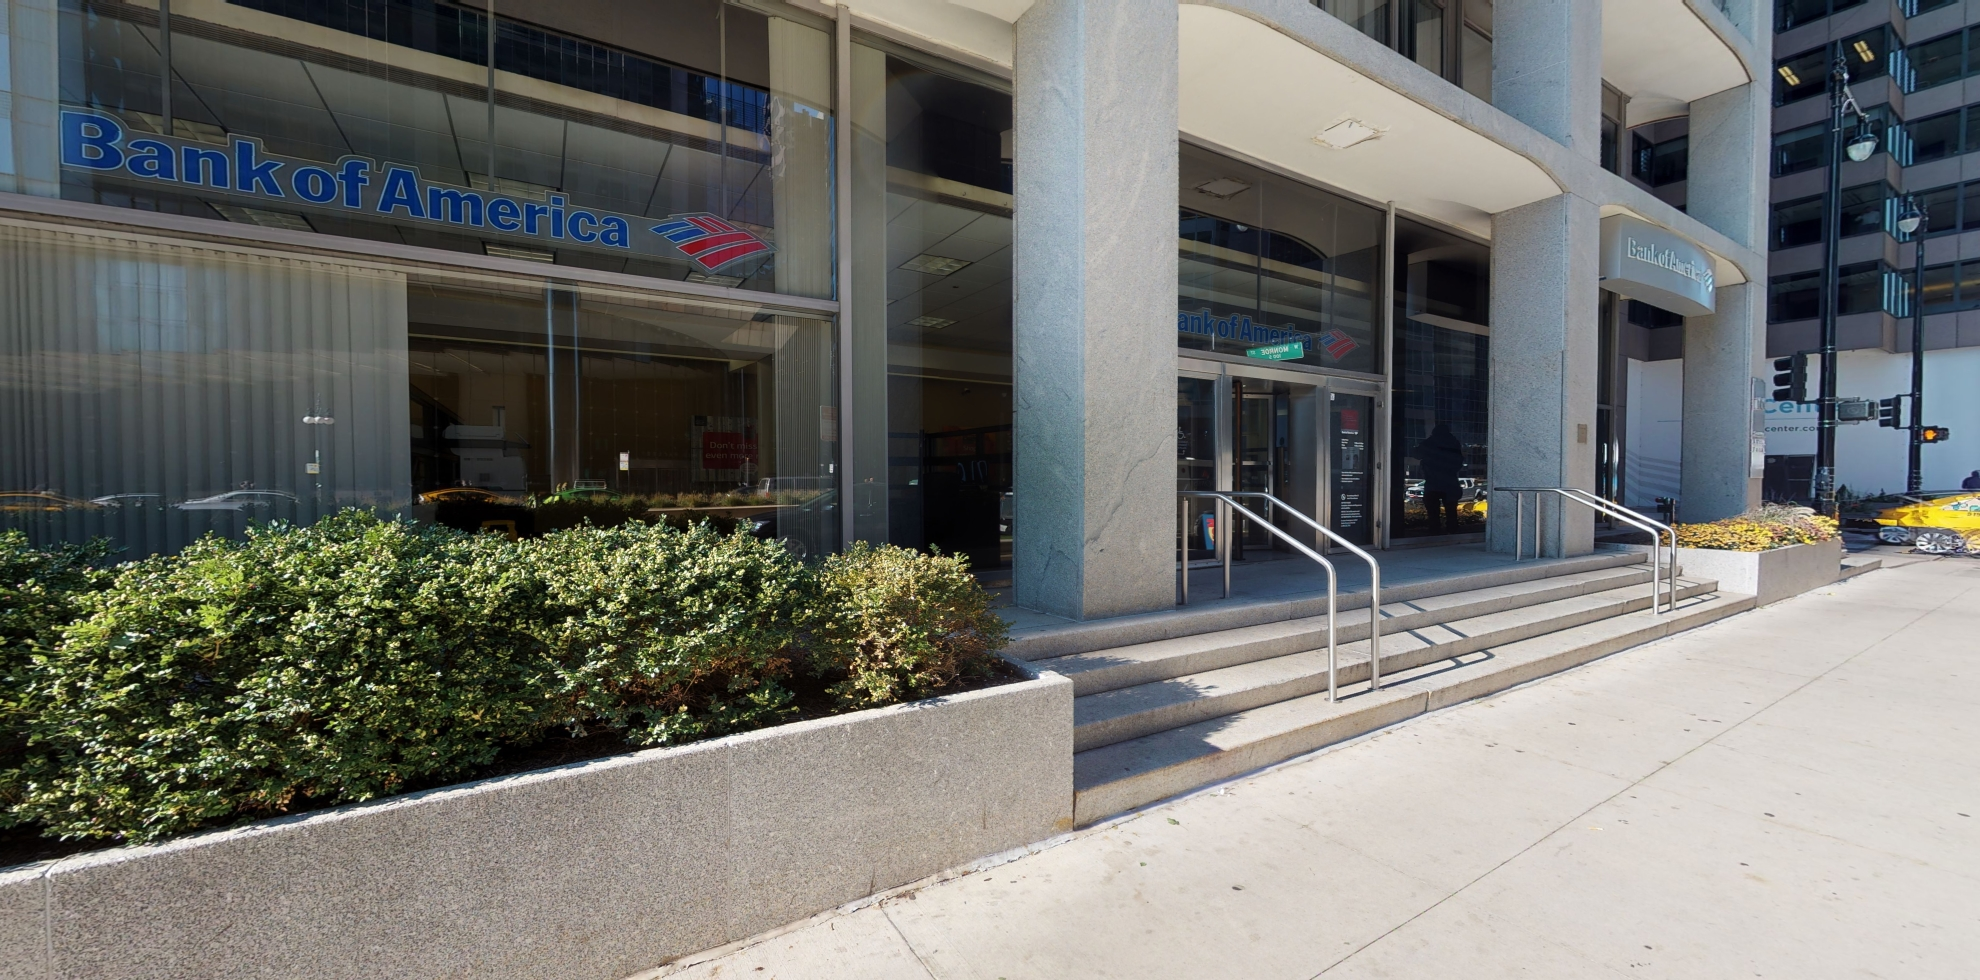 Bank of America financial center with walk-up ATM | 100 S Wacker Dr, Chicago, IL 60606